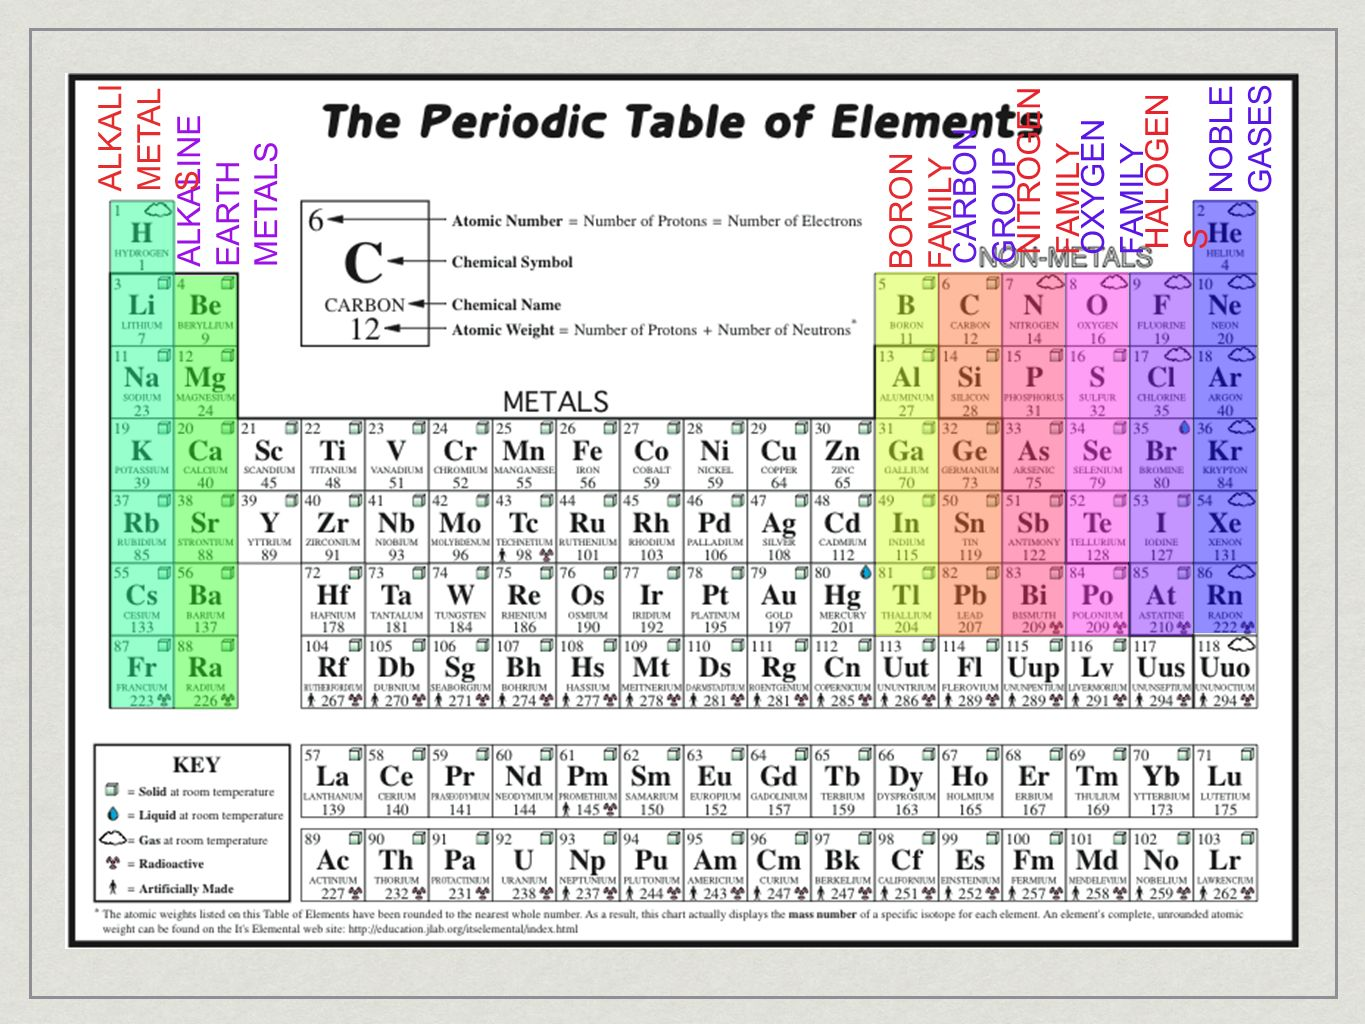 Section 1 introduction to the periodic table ppt video online noble gases alkali metals alkaline earth metals nitrogen family oxygen family gamestrikefo Gallery